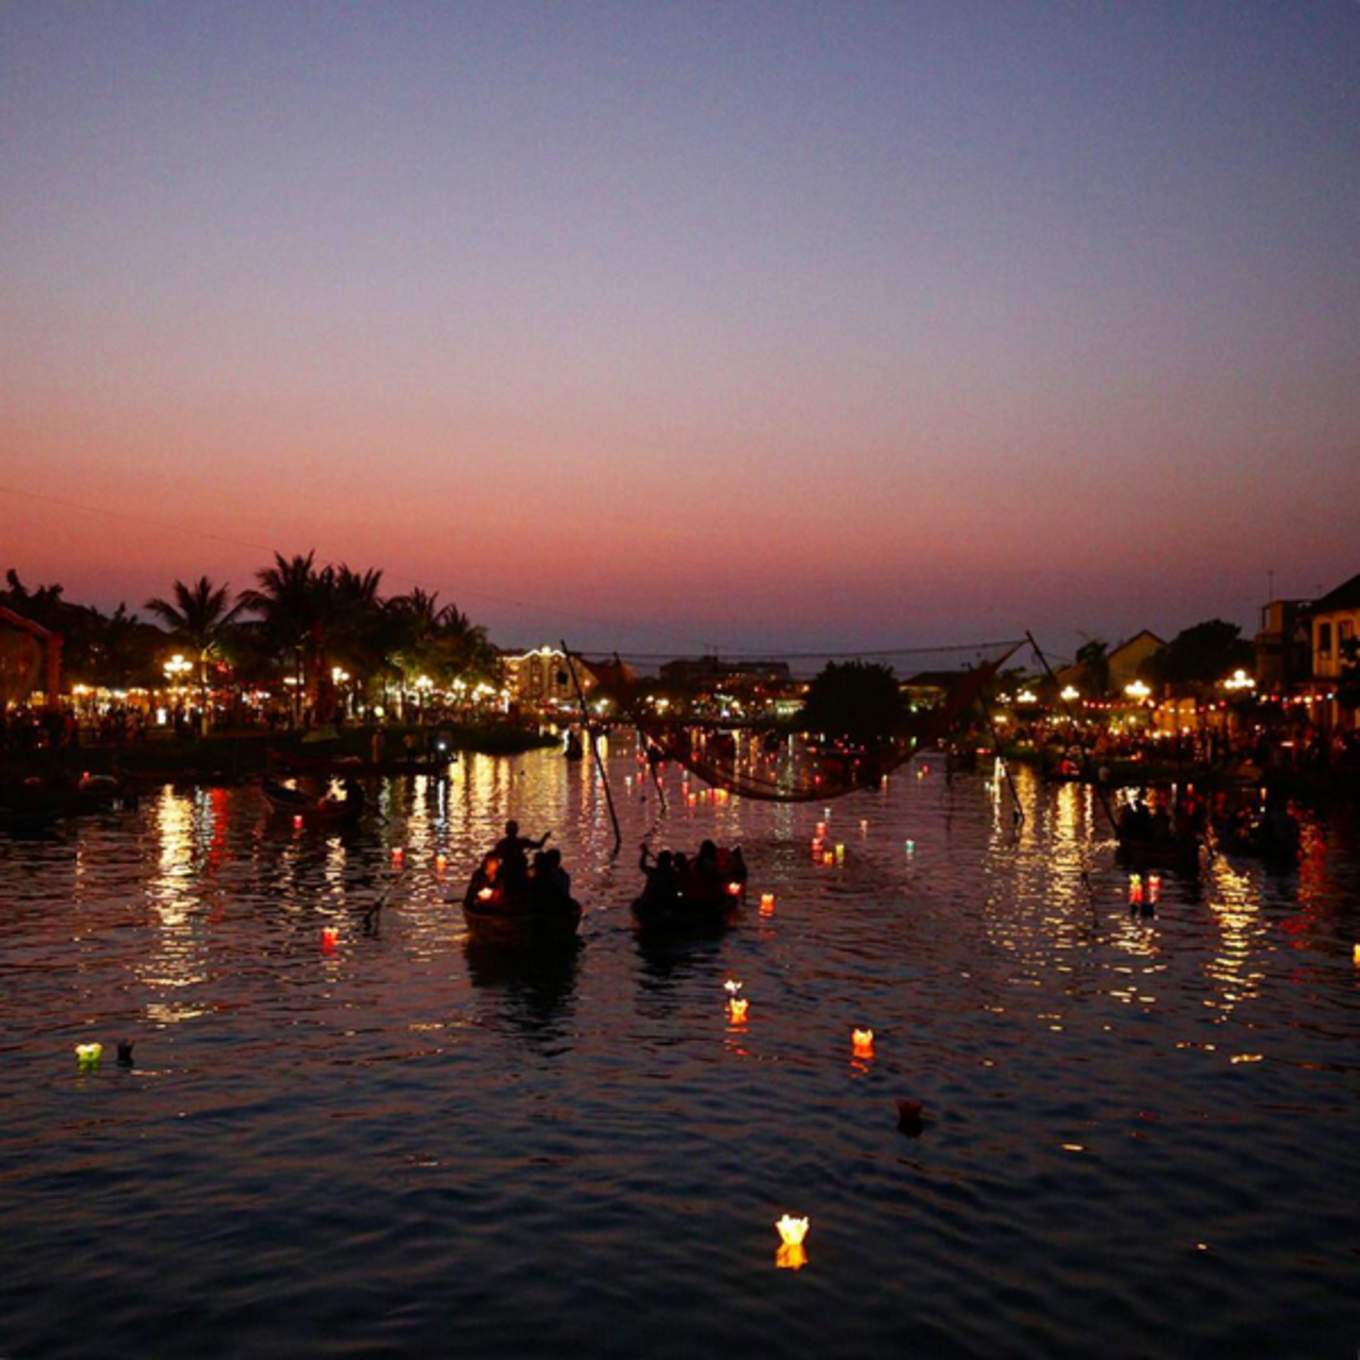 Hoi An Full Month Festival